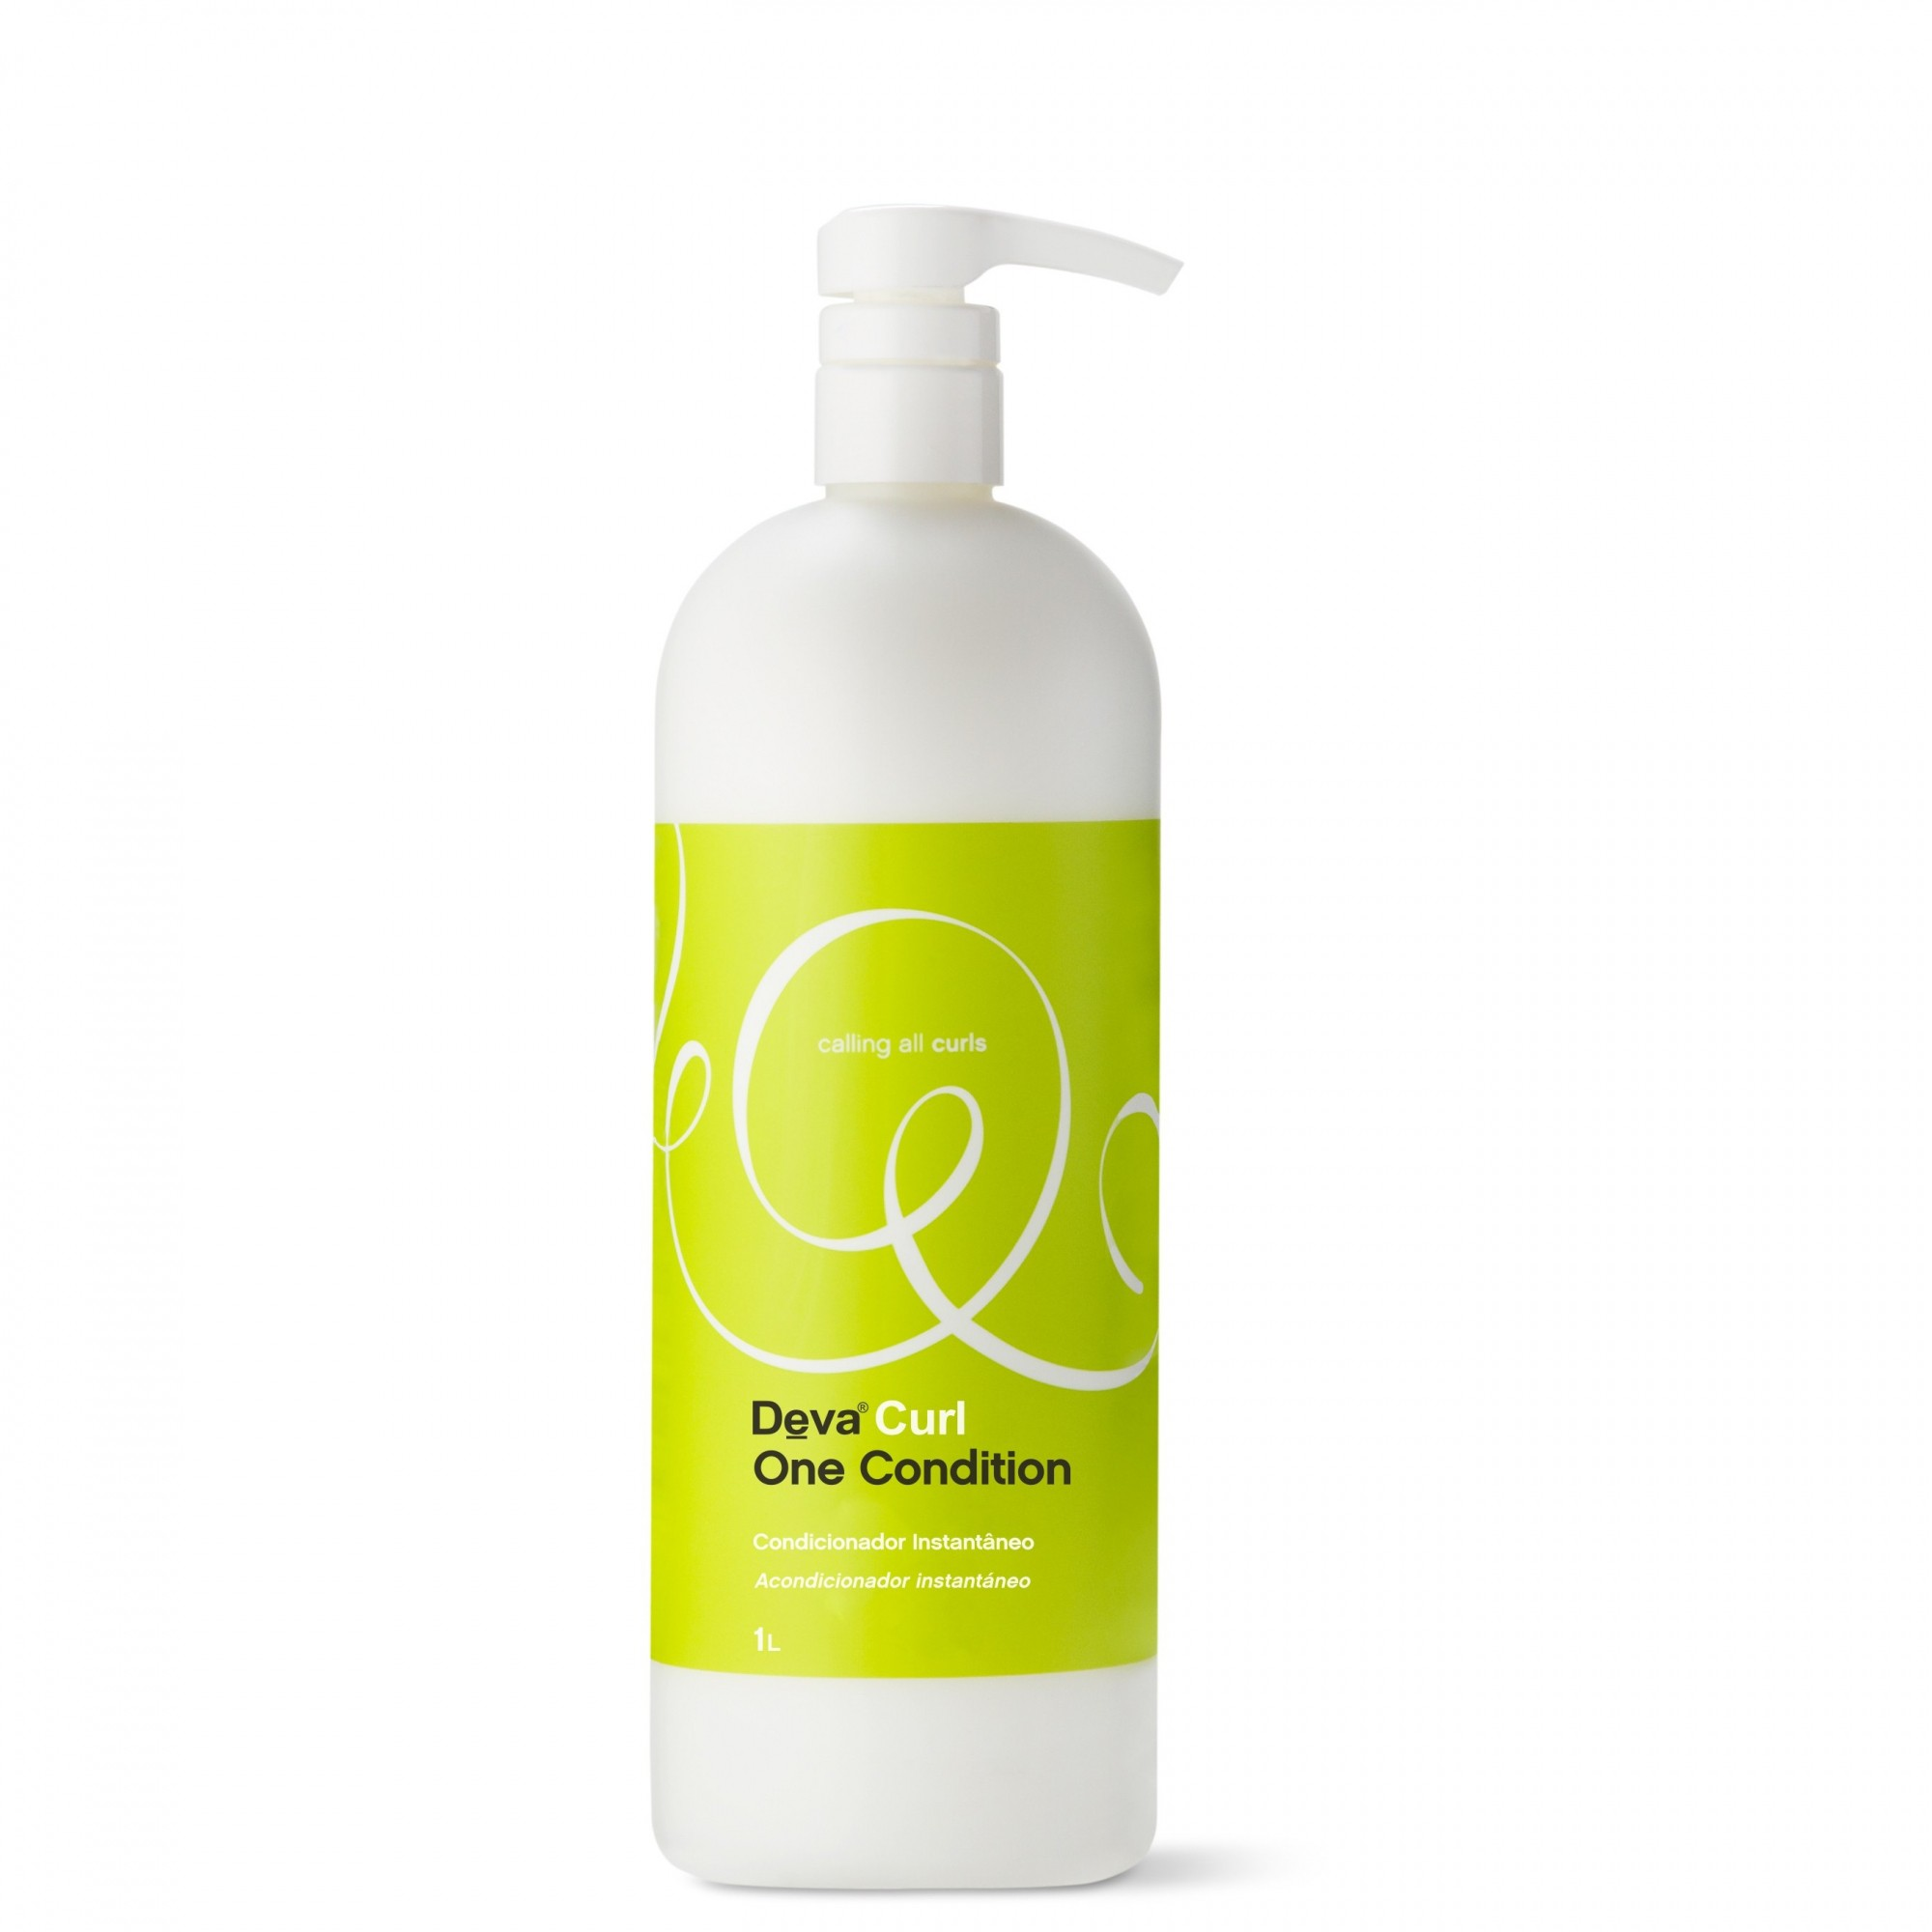 Deva Curl One Condition - Condicionador 1L - G